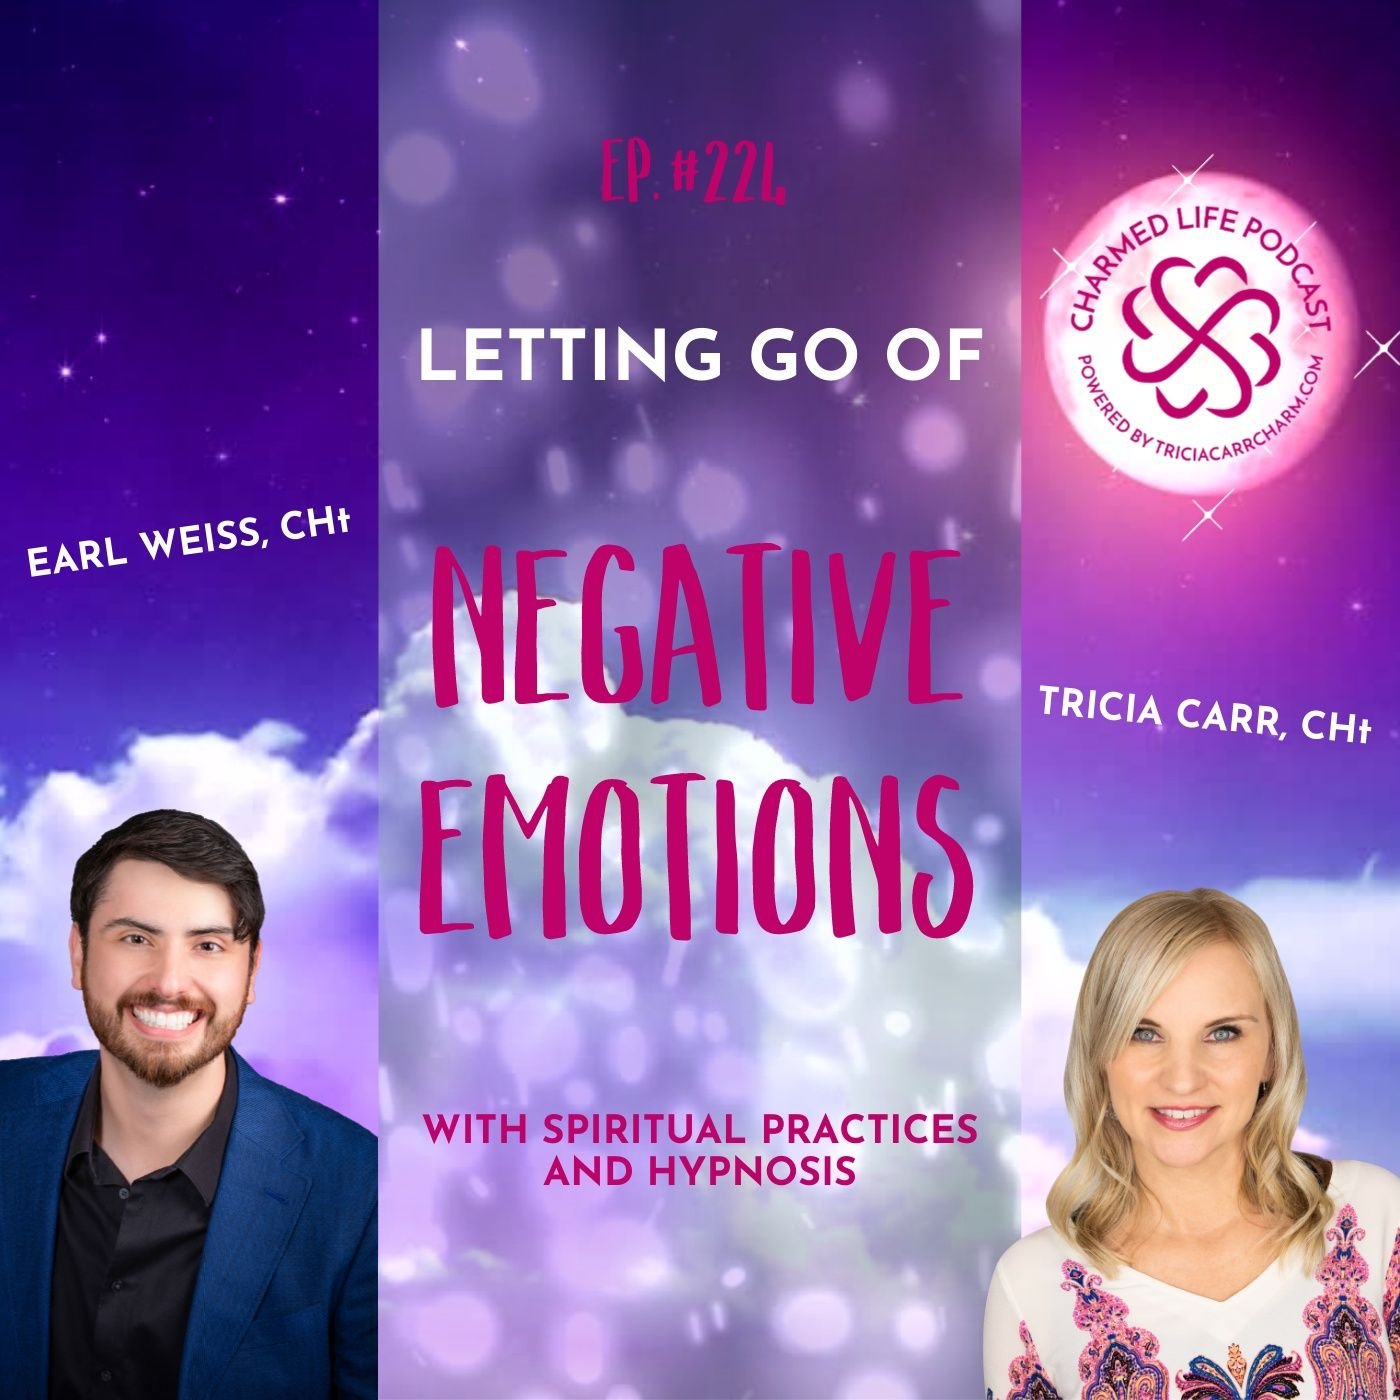 224: Letting Go of the Negative Emotions   Spiritual Practices + Hypnosis